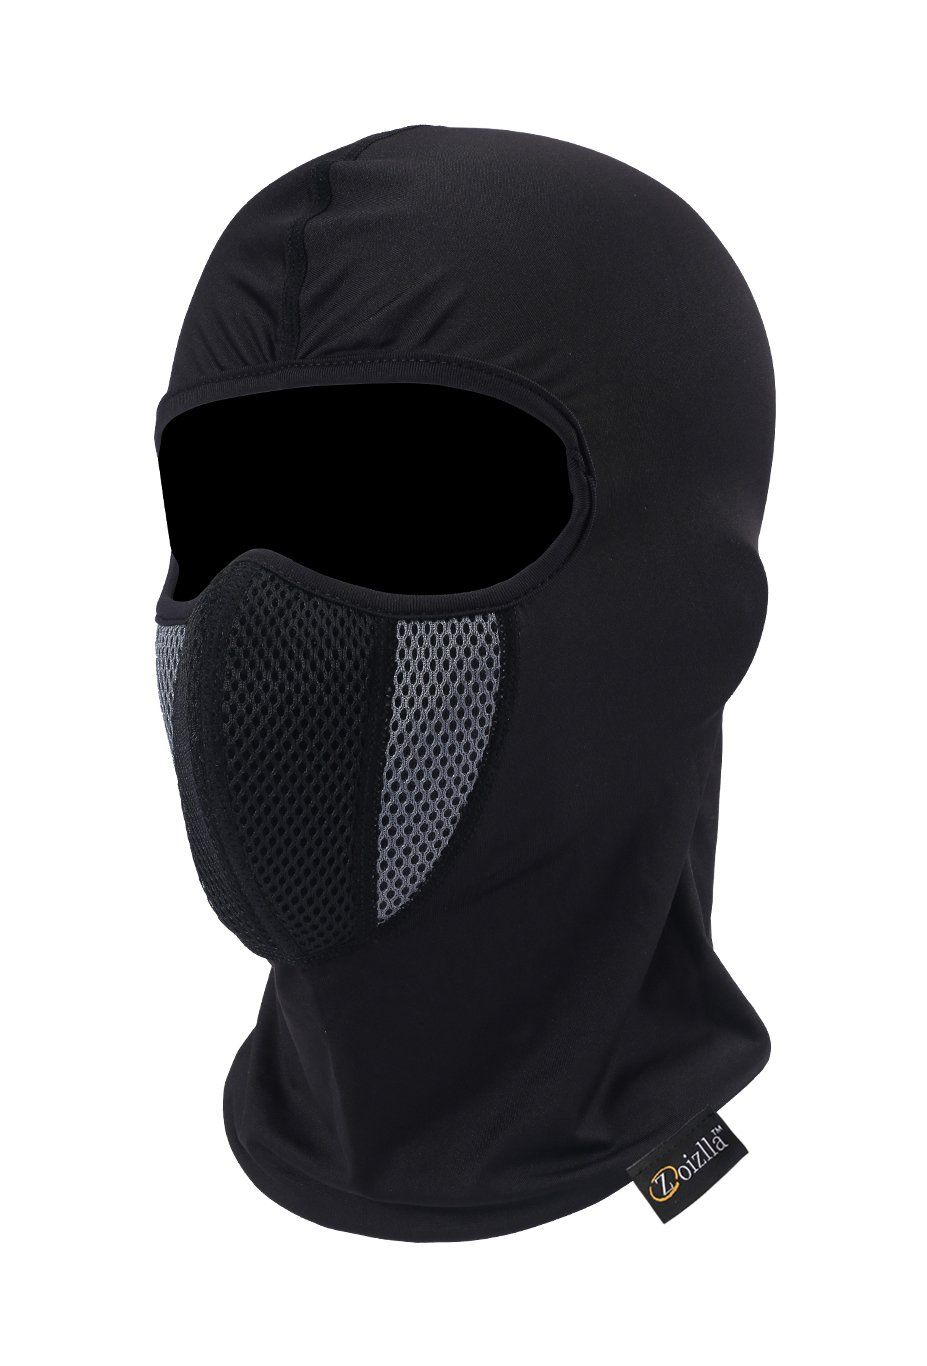 6ae5de6c2 Balaclava Ski Mask, Zoizlla Motorcycle Face Mask for Men/Women, Thin ...